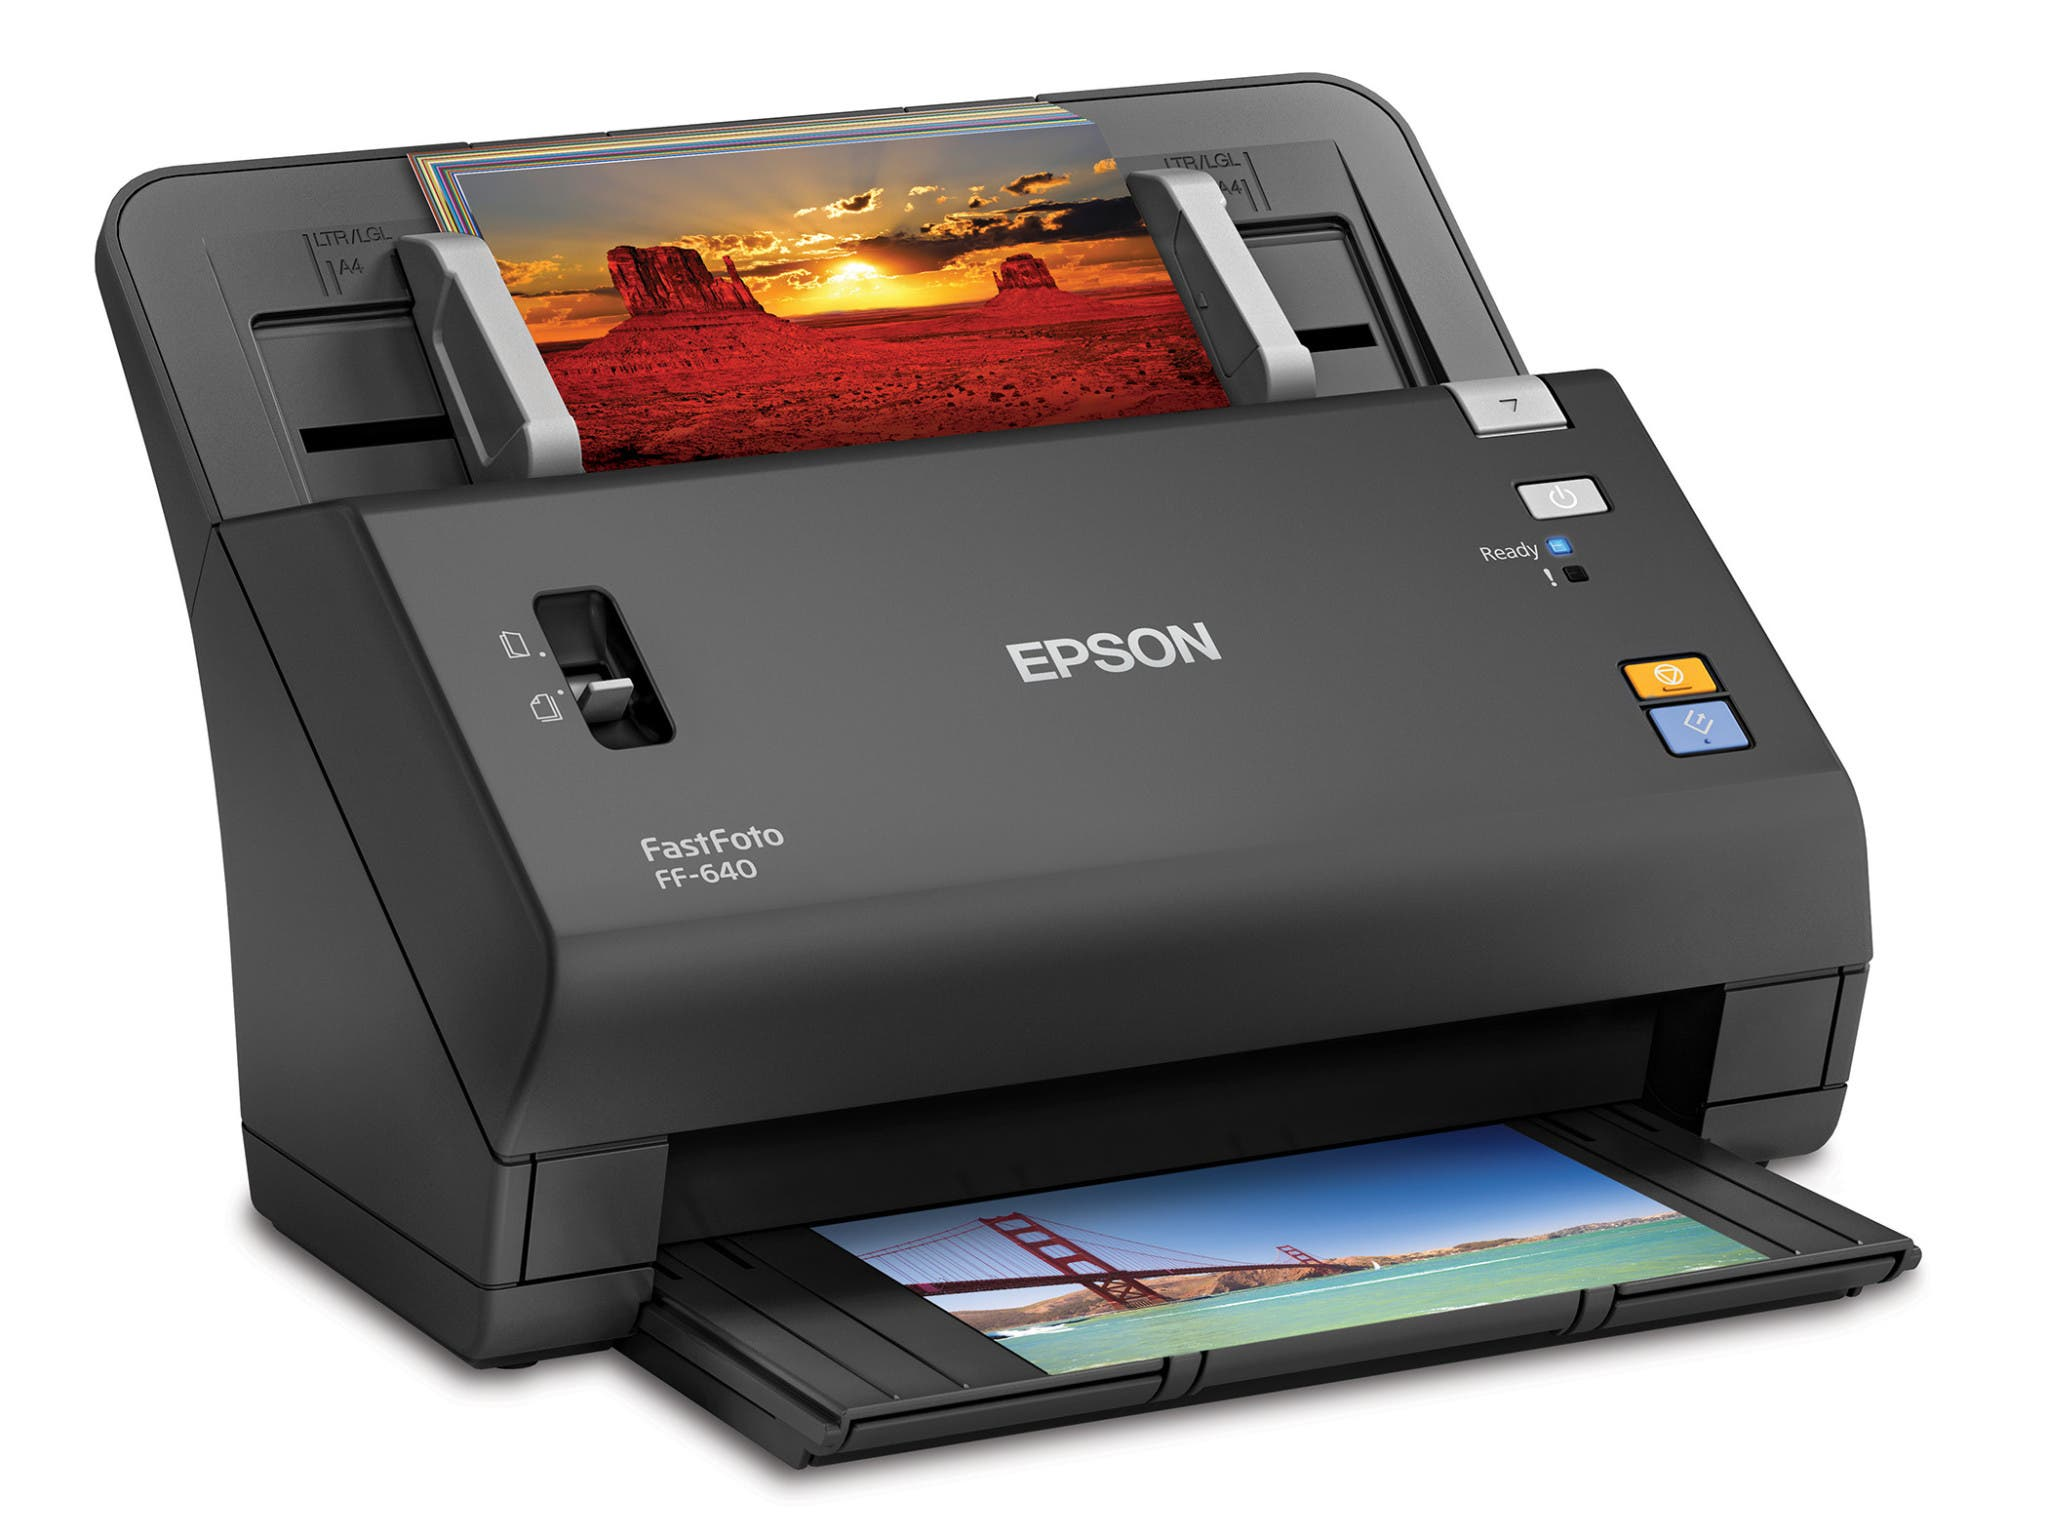 Epson FastFoto FF-640 Will Help Digitize Your Photo Prints In As Little As 1 Second